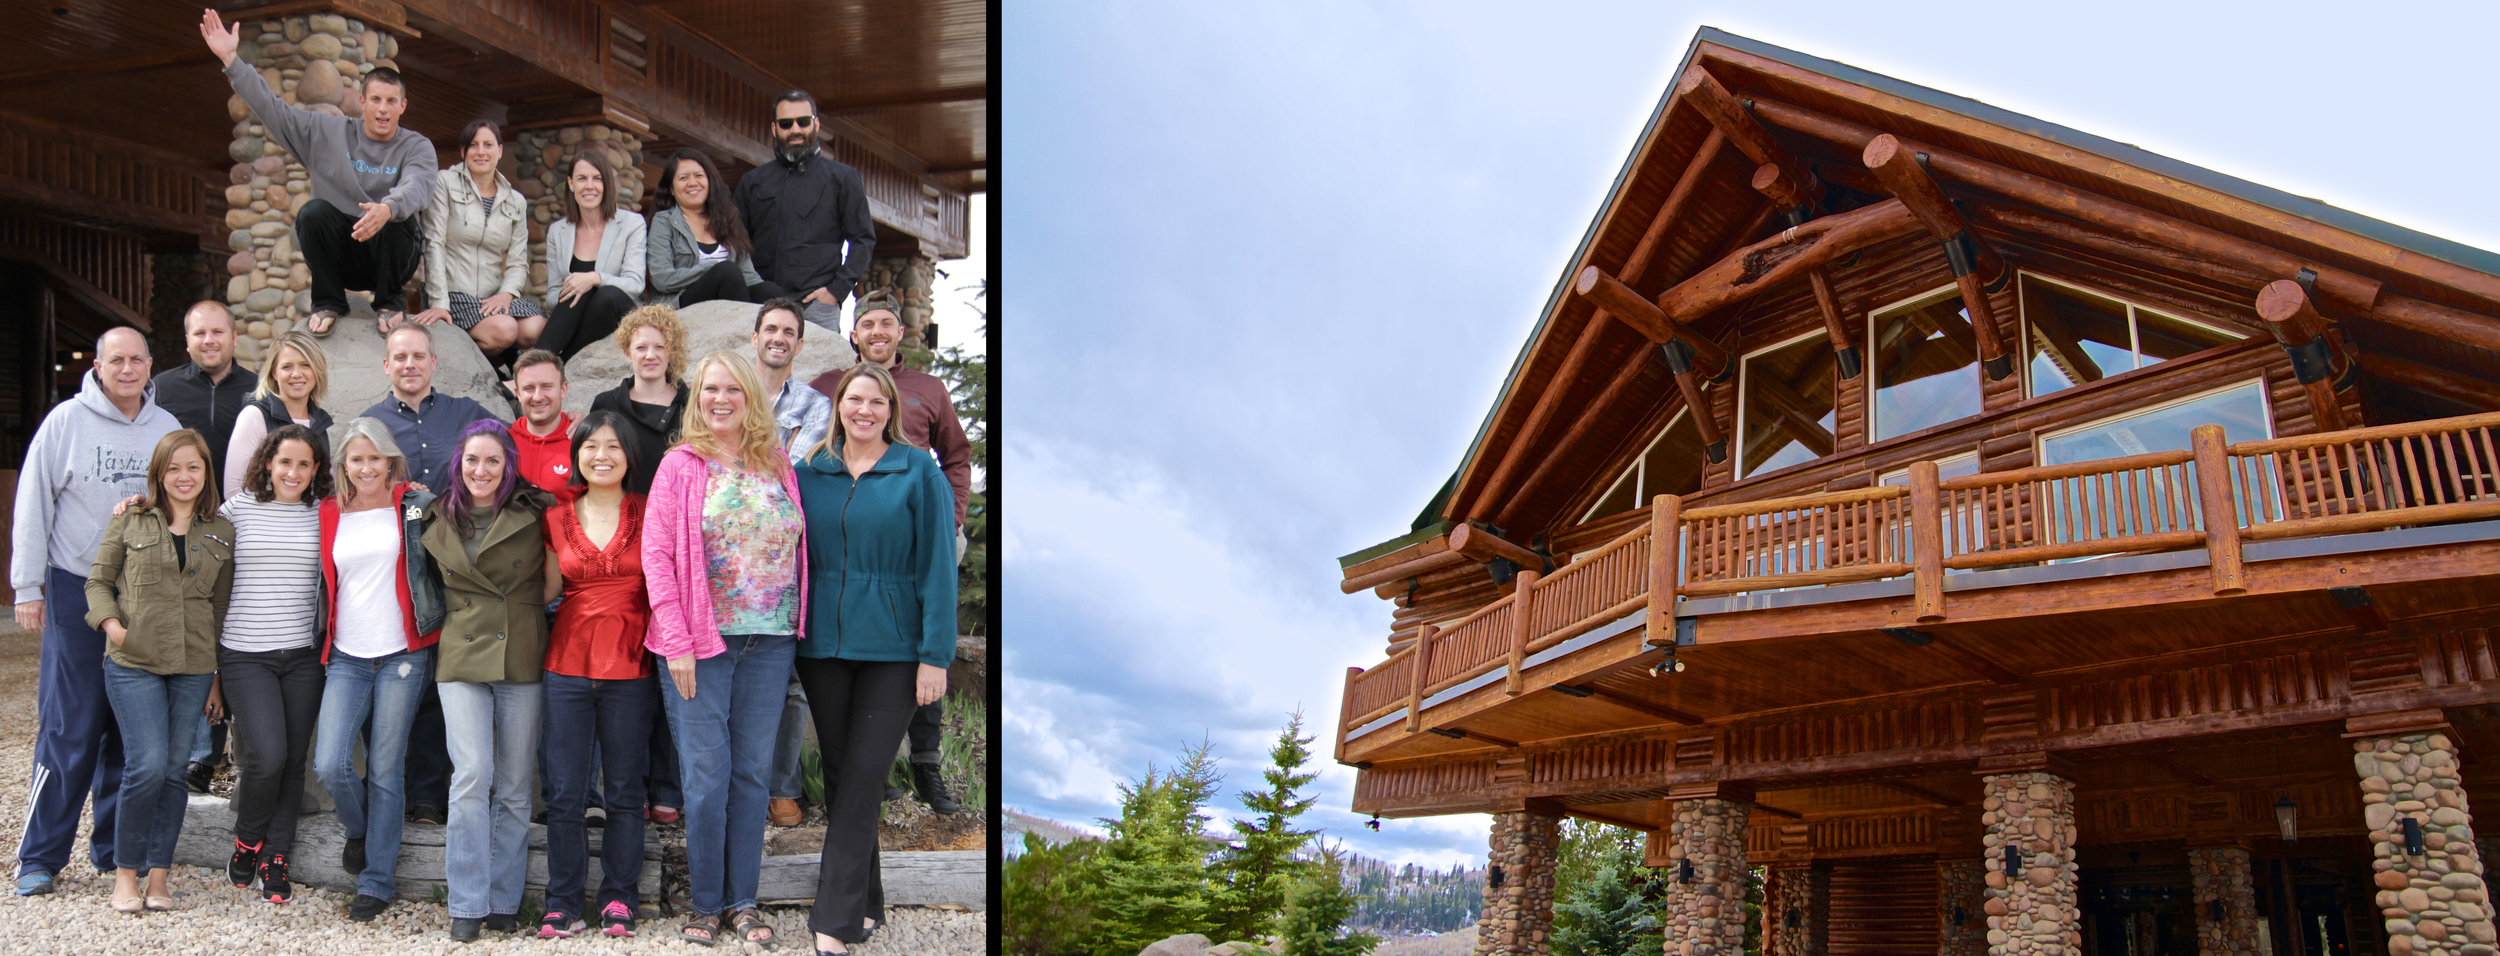 Left:  Group shot of retreat attendees and workshop facilitators.  Right:  Front shot of the Timber Moose Lodge – which is the largest privately-owned log cabin in the nation.